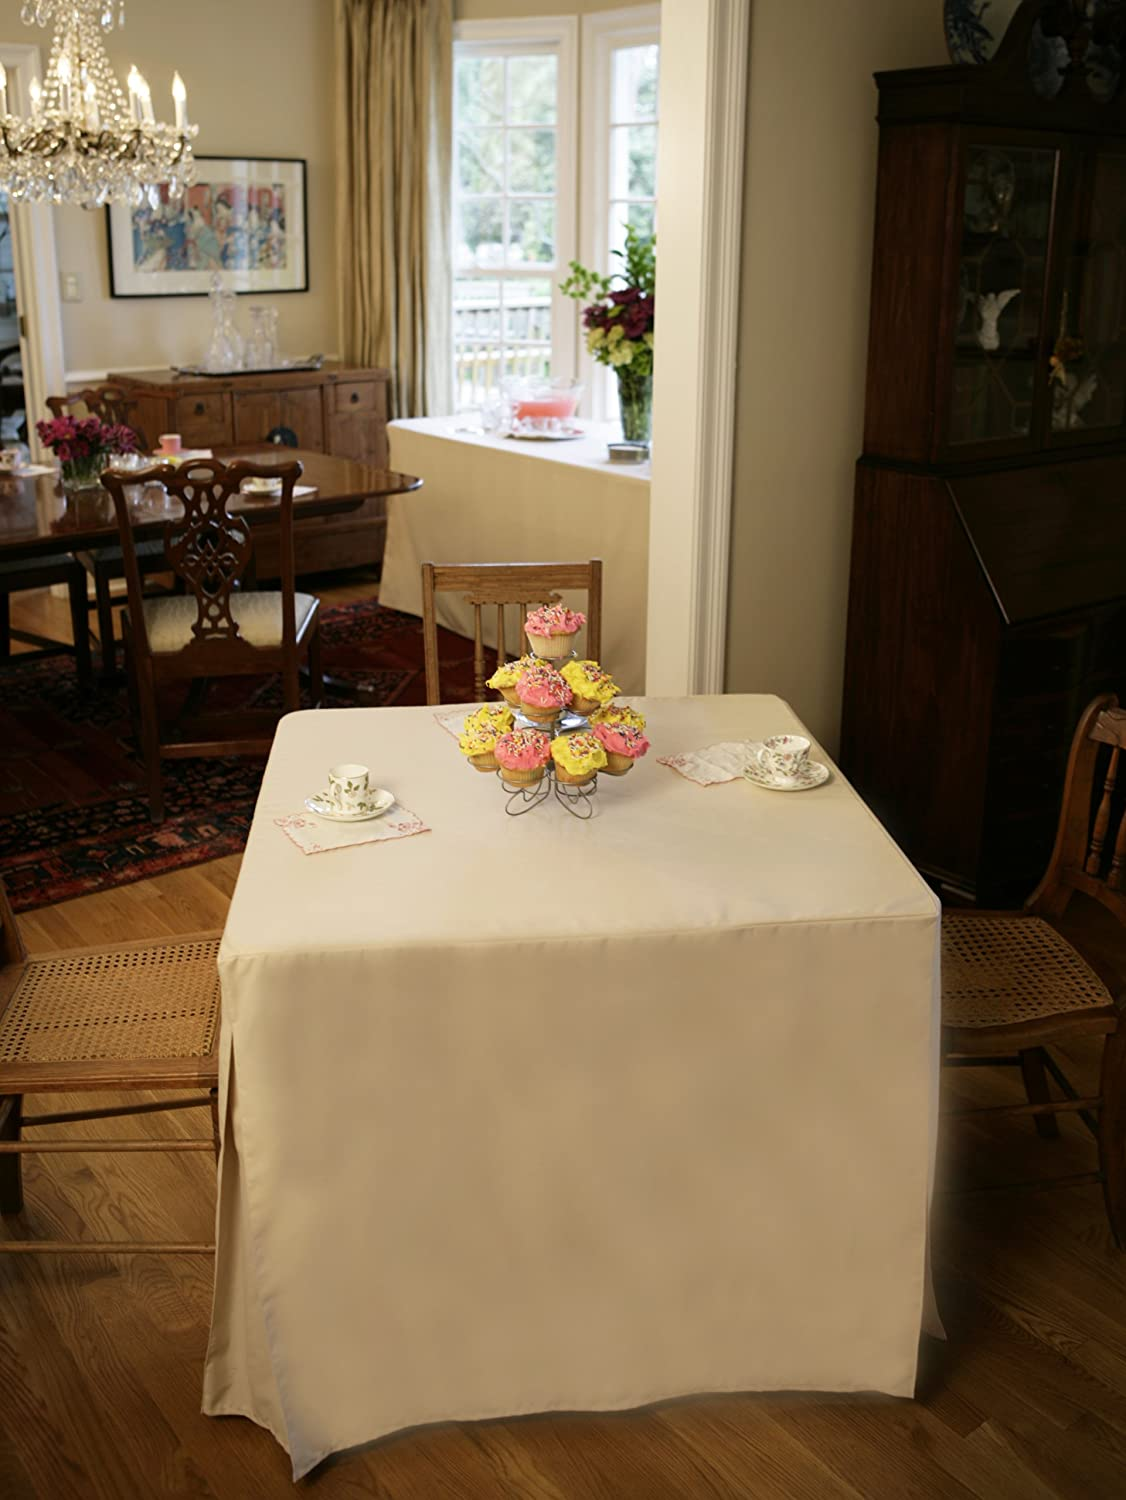 Amazon com 34 inch tablecloth fitted folding table cover tablevogue white kitchen dining